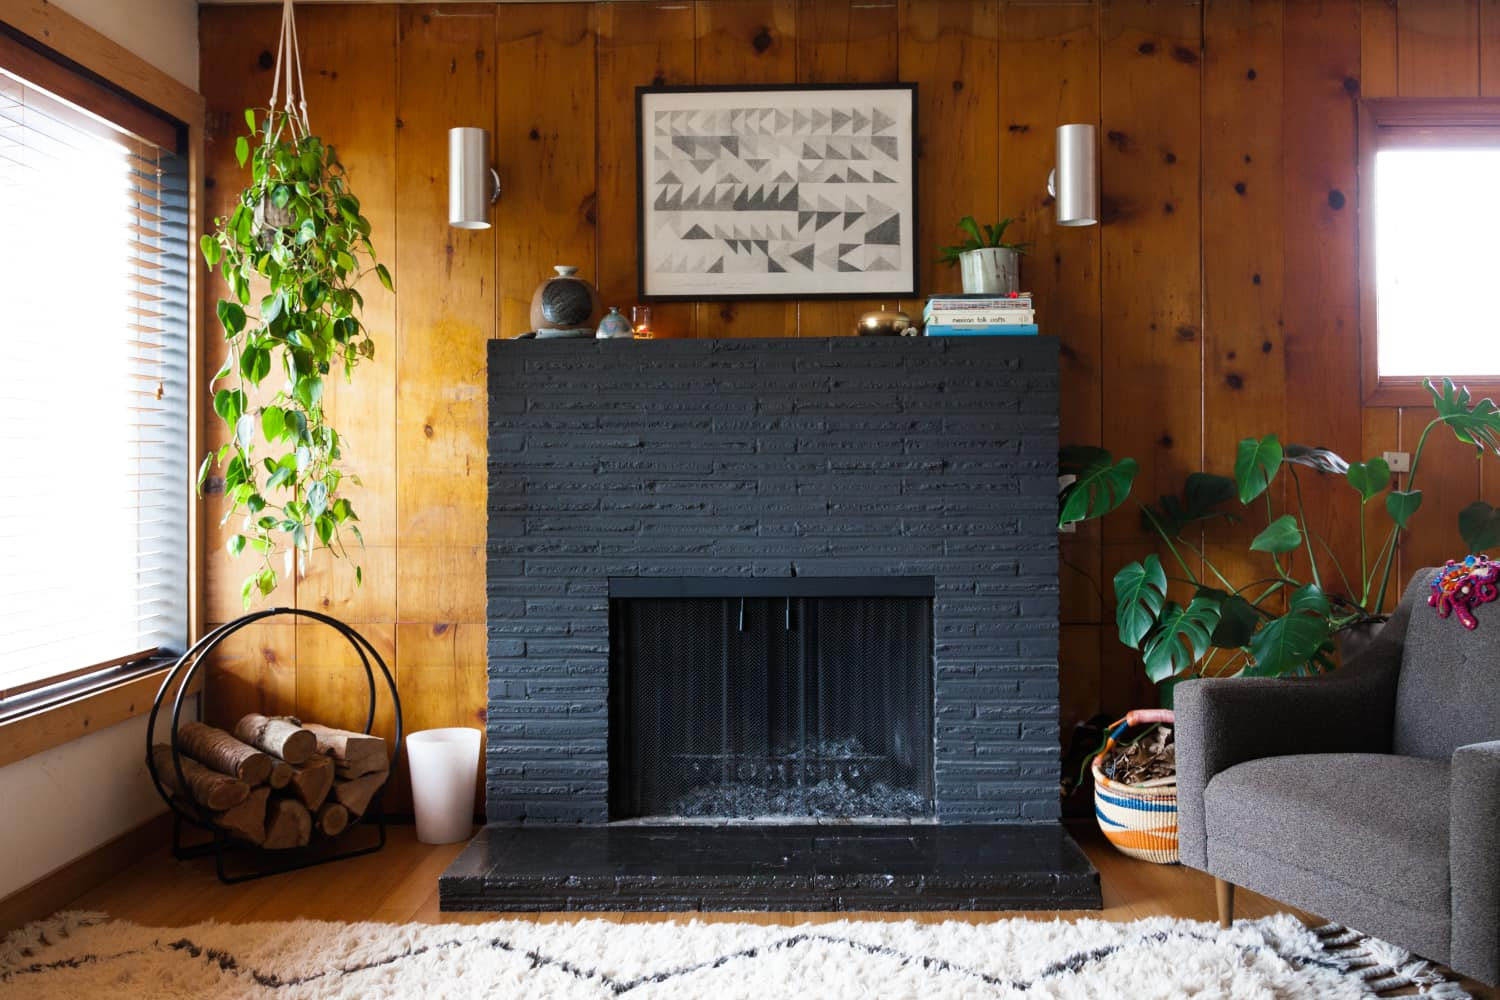 Get the Look: Warm, Cozy & Classic Mid-Century Inspired Style